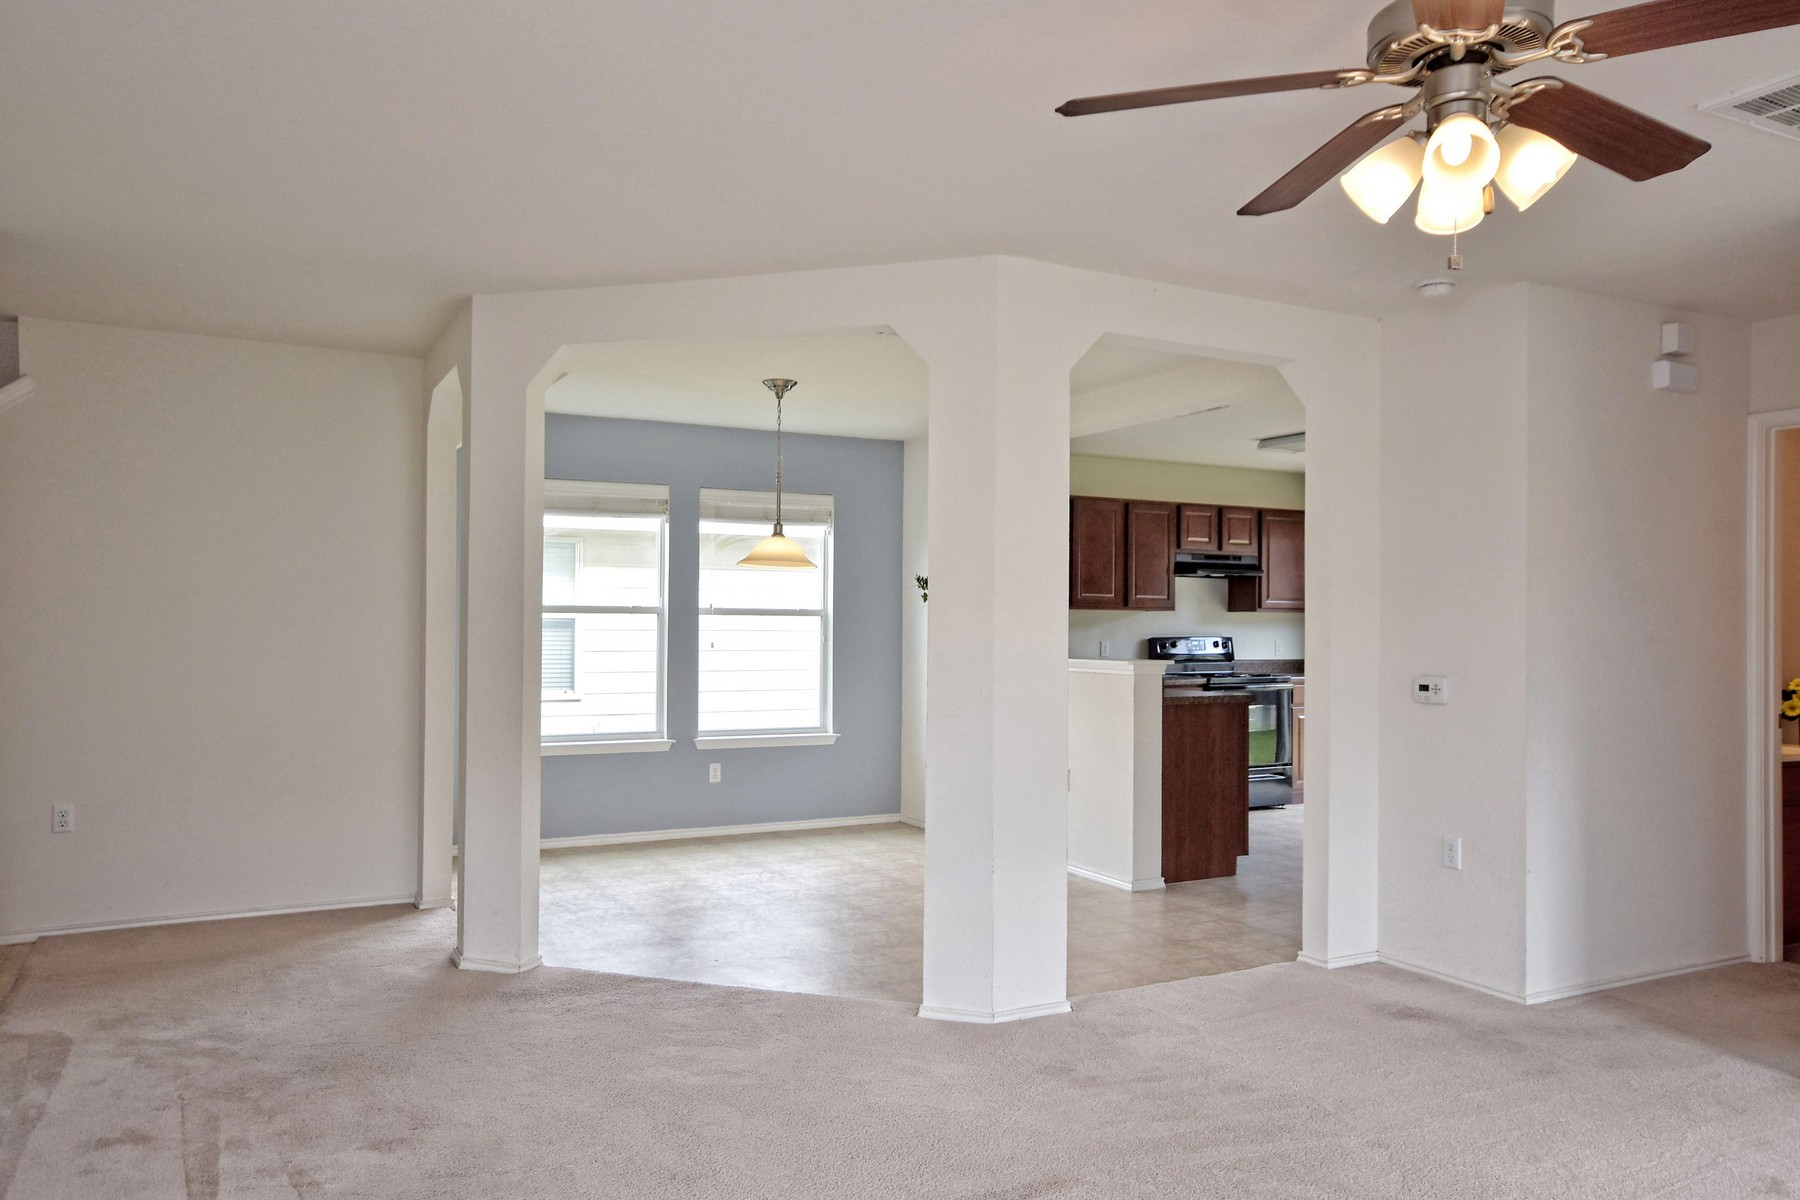 Additional photo for property listing at Affordable 2 Story Home with Convenient Location 5716 Elk Xing Austin, Texas 78724 Estados Unidos